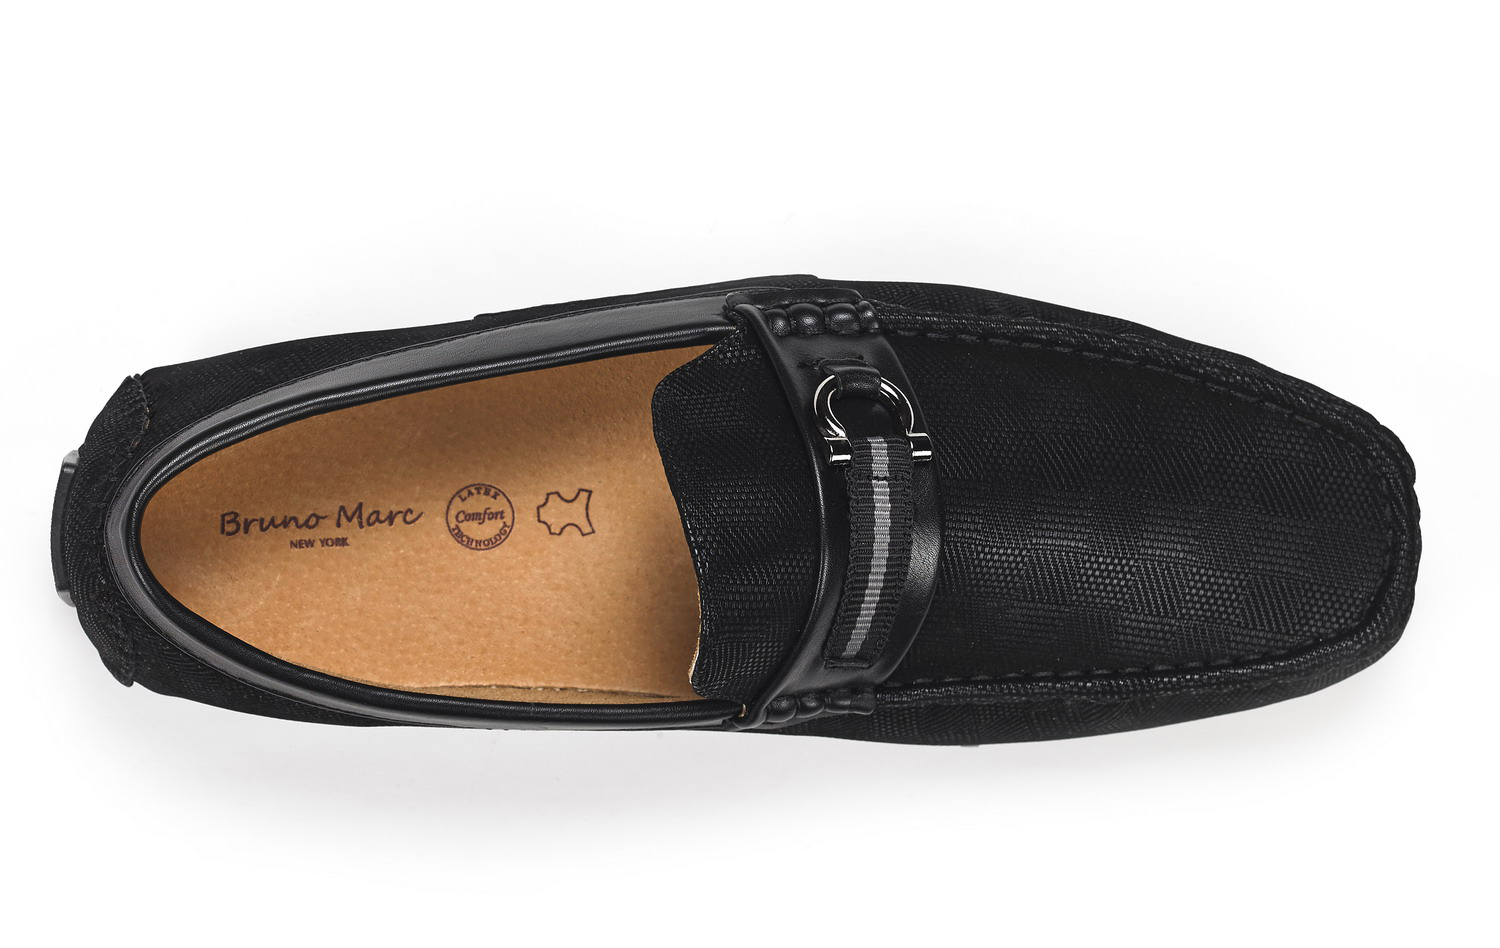 Bruno-Marc-Men-Casual-Driving-Loafers-Breathable-Antiskid-Slip-On-Moccasins-Shoe thumbnail 13